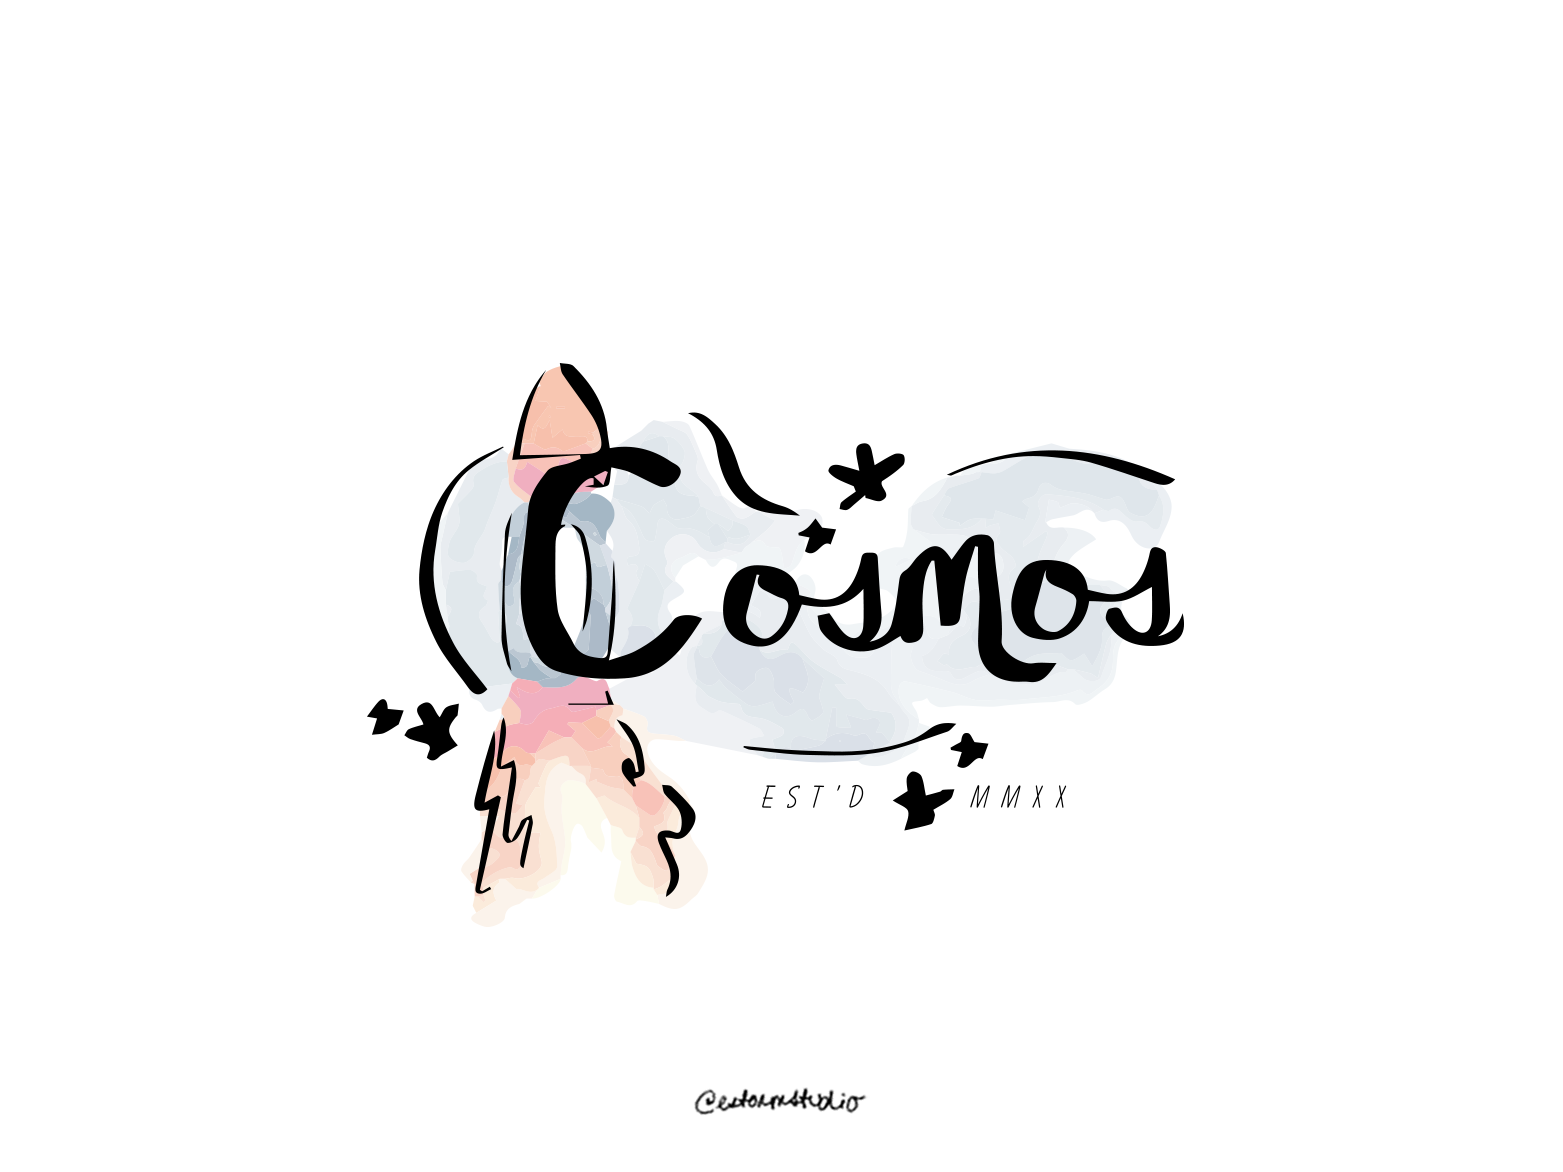 01 / Cosmos daily logo design daily logo challenge typography vector campaign logo advertising website branding whimsical minimal icon watercolor illustration design